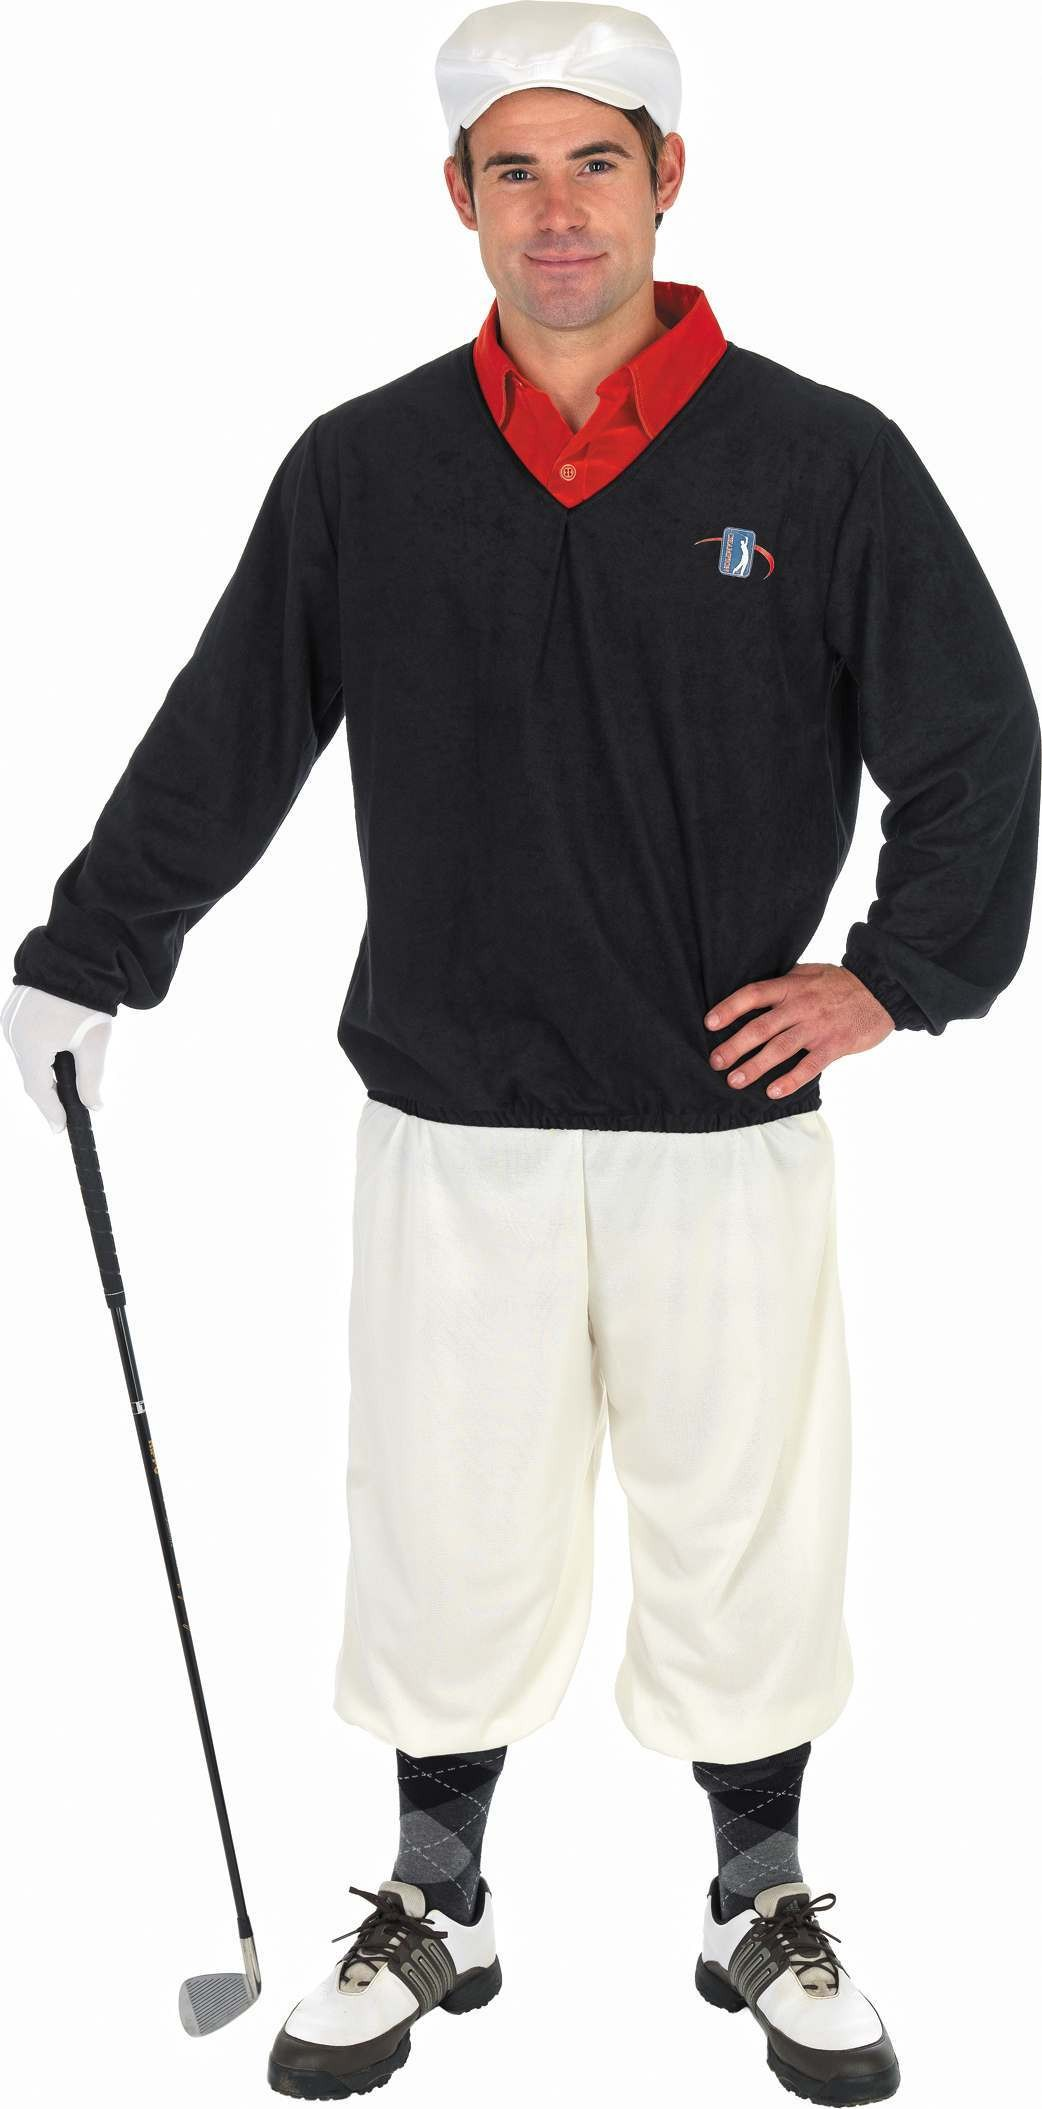 Golfer Fancy Dress Costume